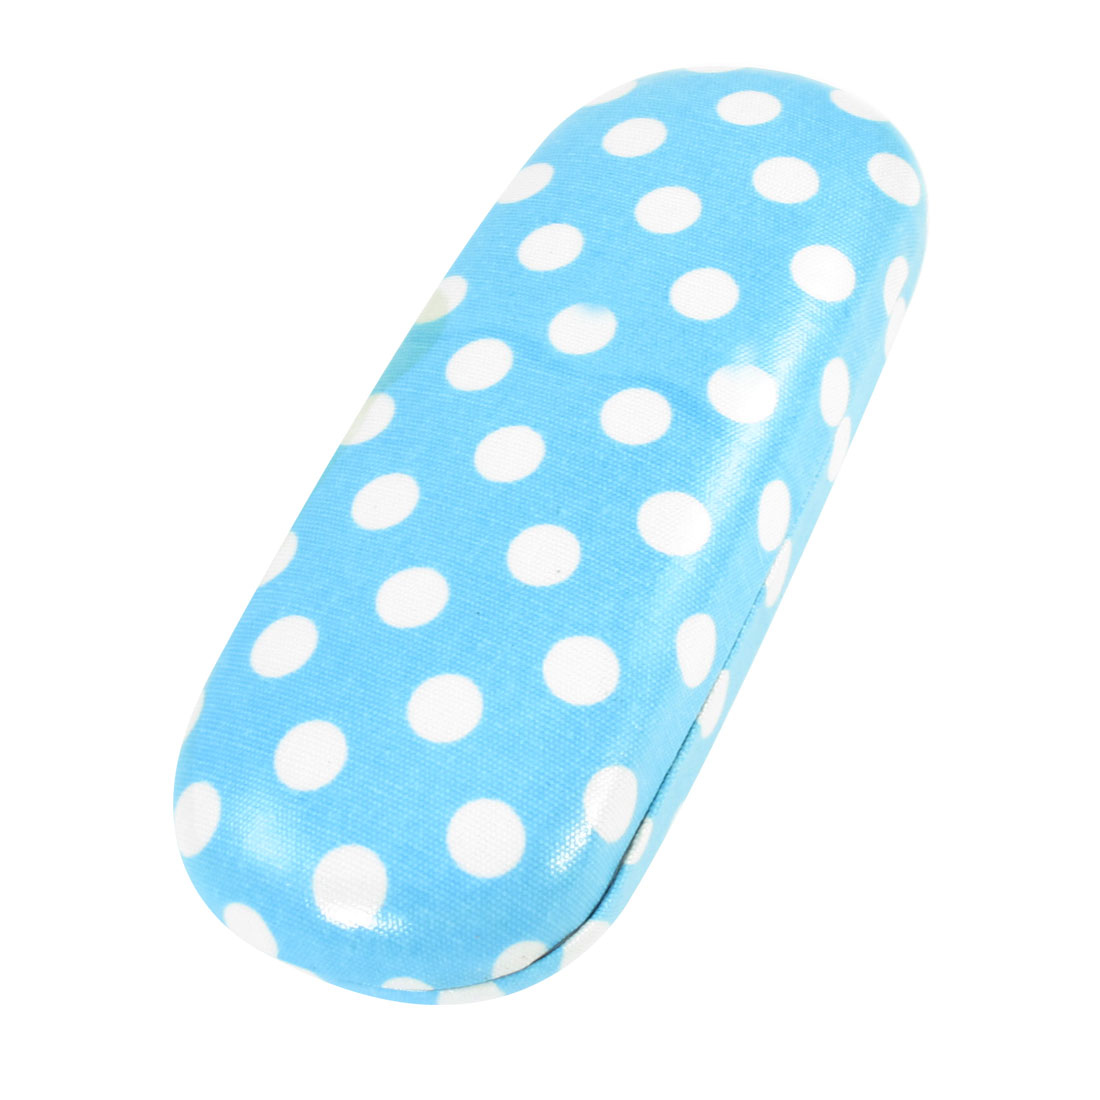 Handy White Dots Print Rectangle Light Blue Plastic Eyeglasses Glasses Case Box